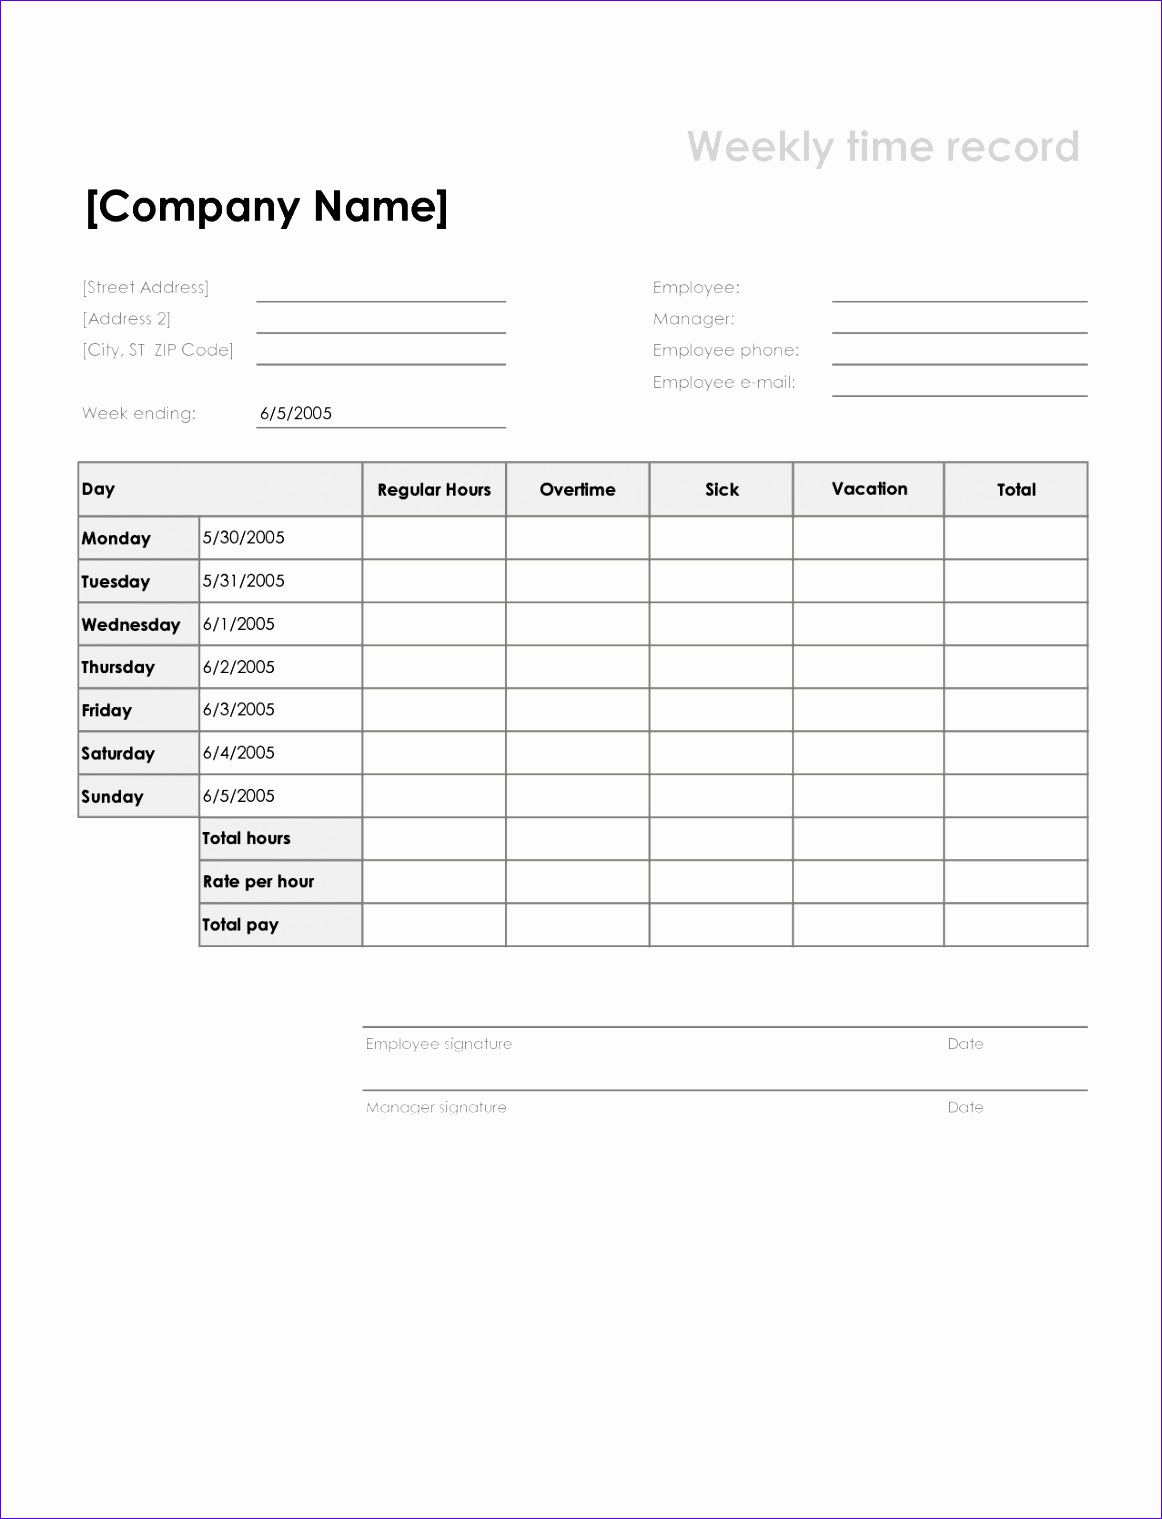 Purchase order Excel Template Pcww5 Fresh 5 Weekly Timesheet Template 12771652